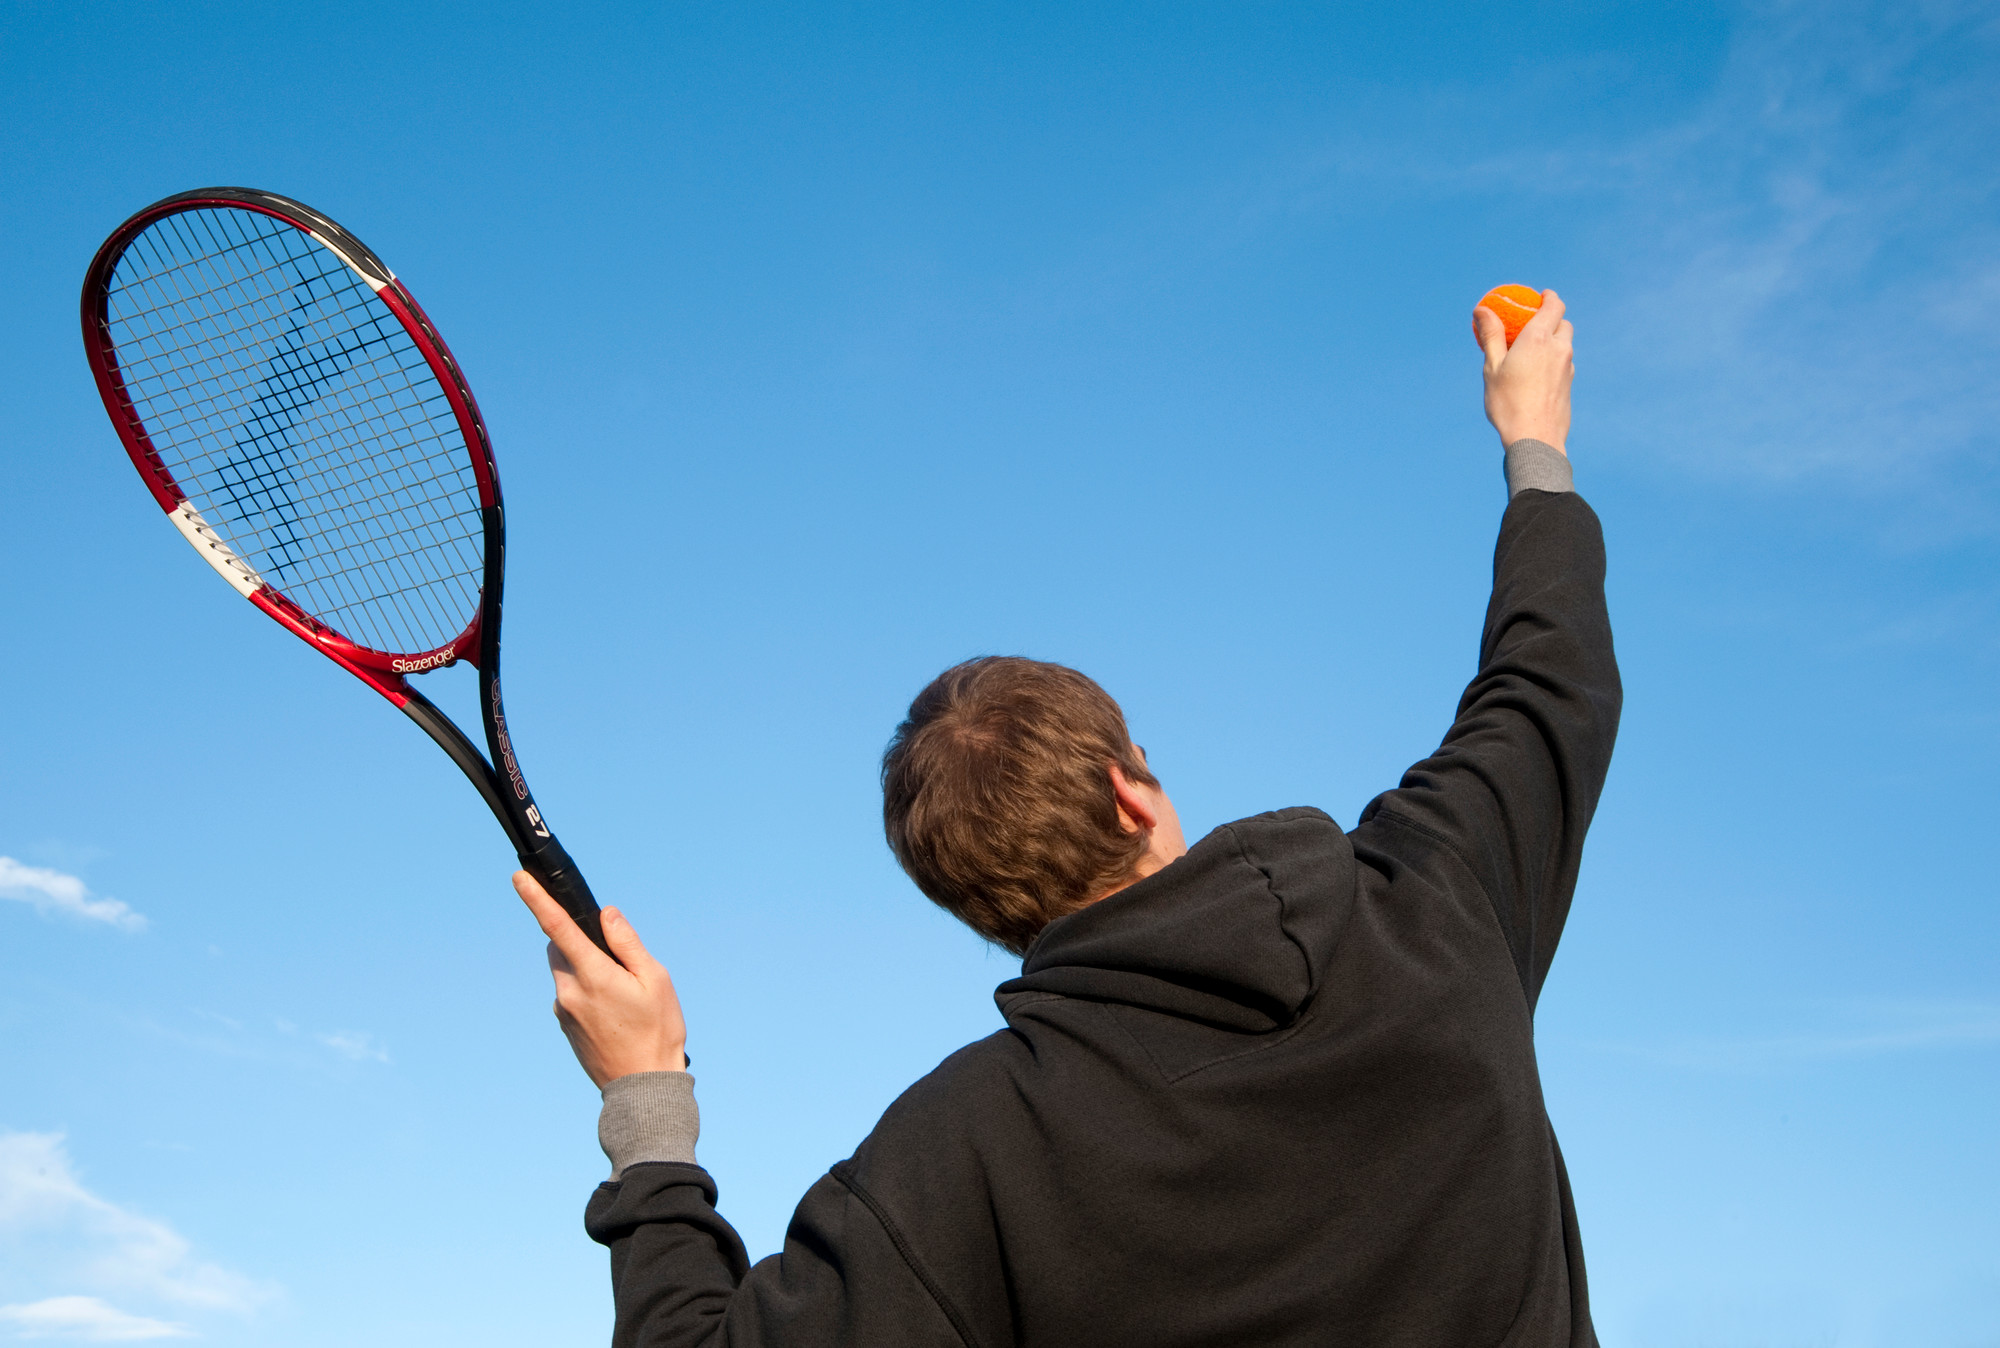 North-east residents are reminded they can book tennis courts